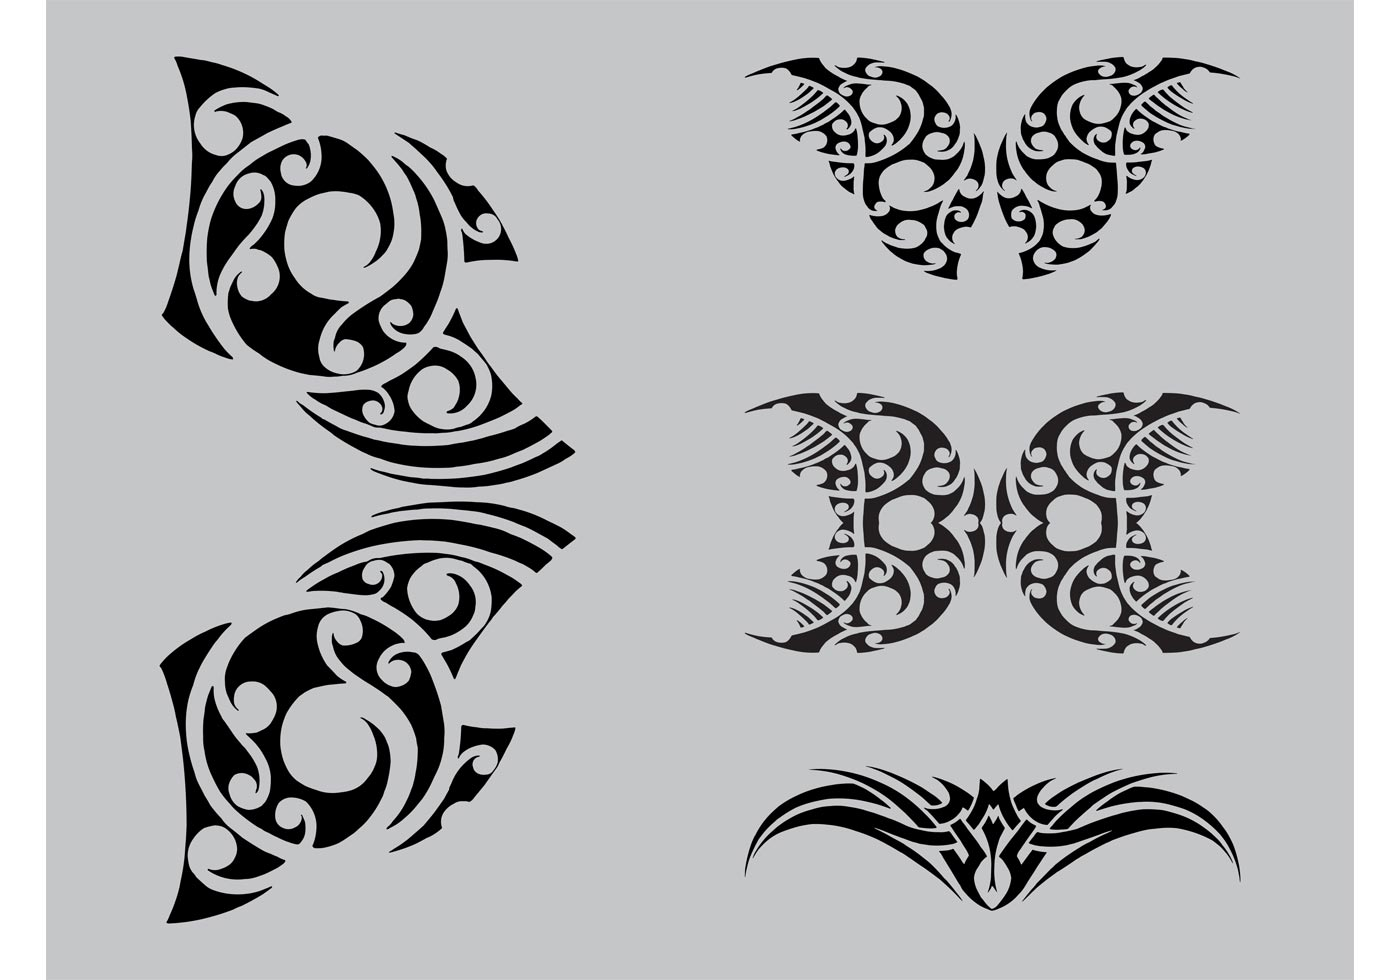 tattoo designs download free vector art stock graphics images. Black Bedroom Furniture Sets. Home Design Ideas